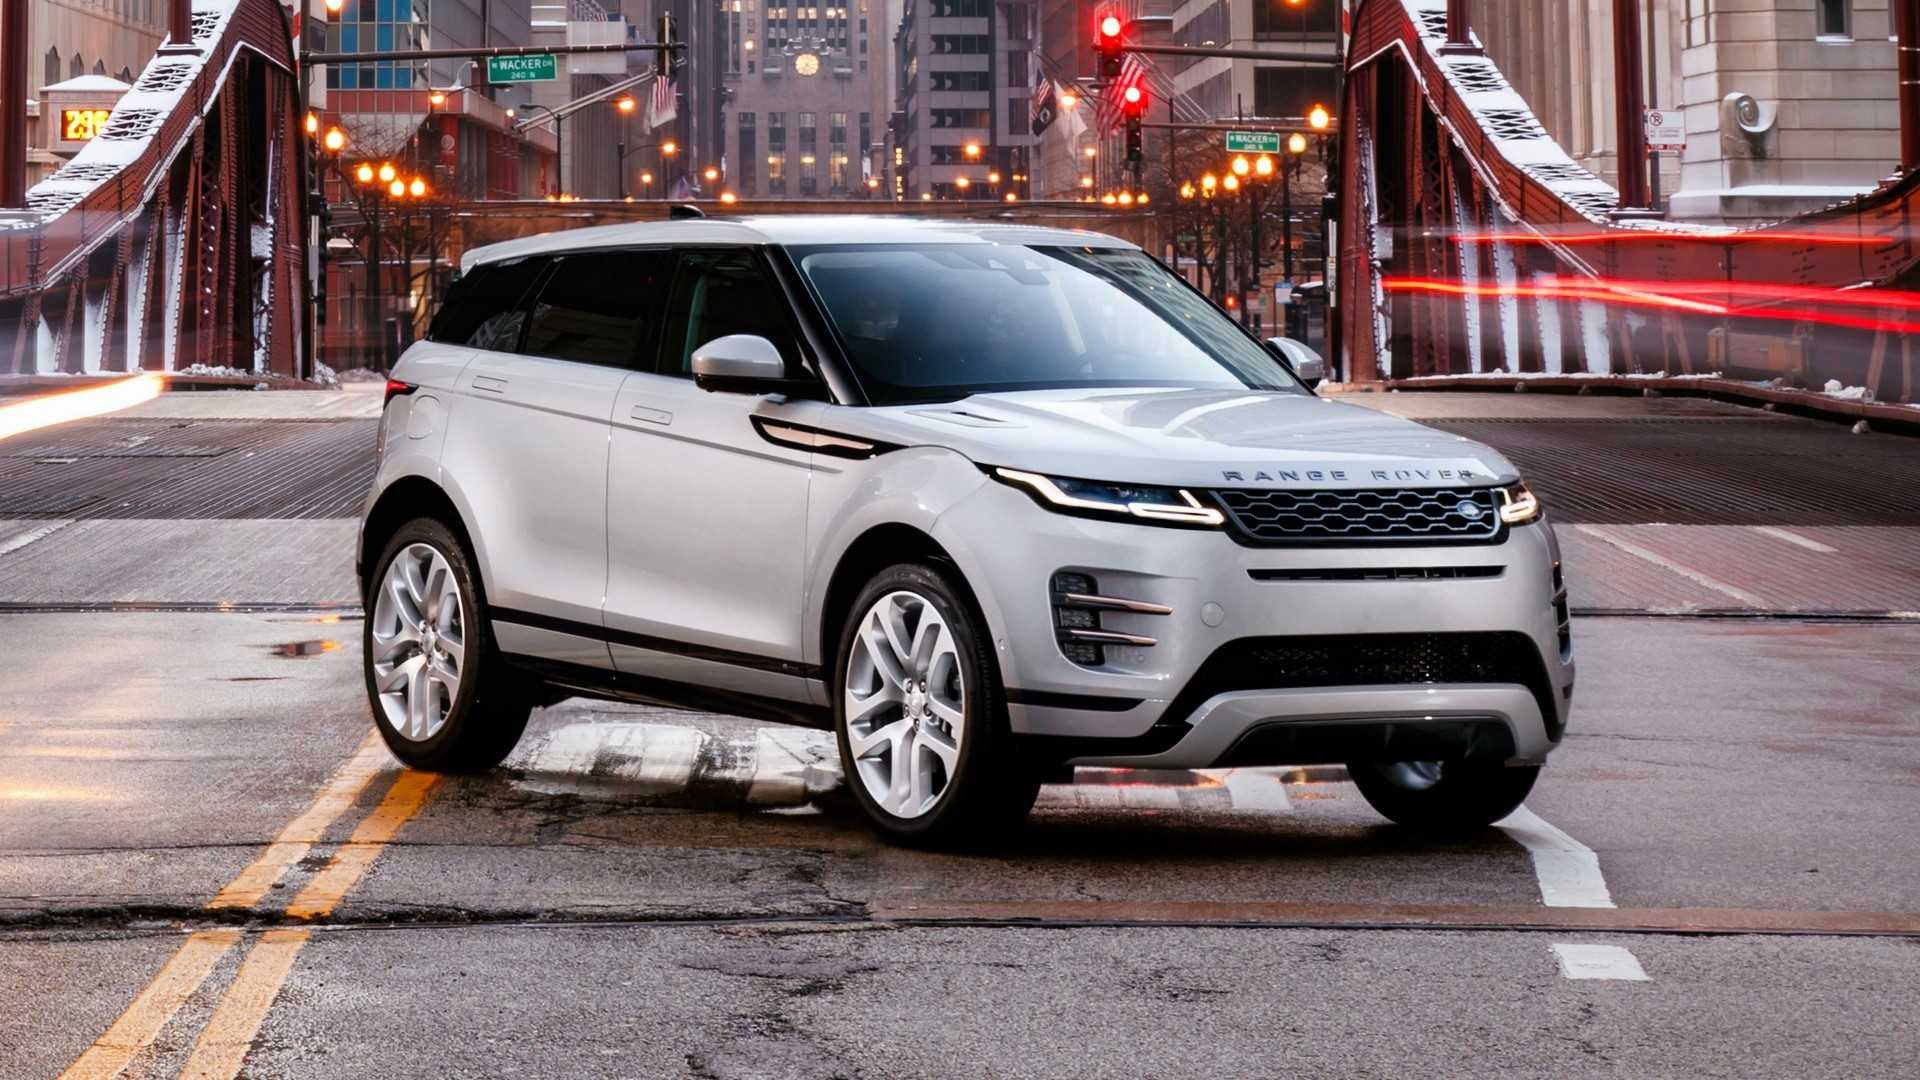 Land Rover Evoque >> Land Rover Range Rover Evoque News And Reviews Motor1 Com